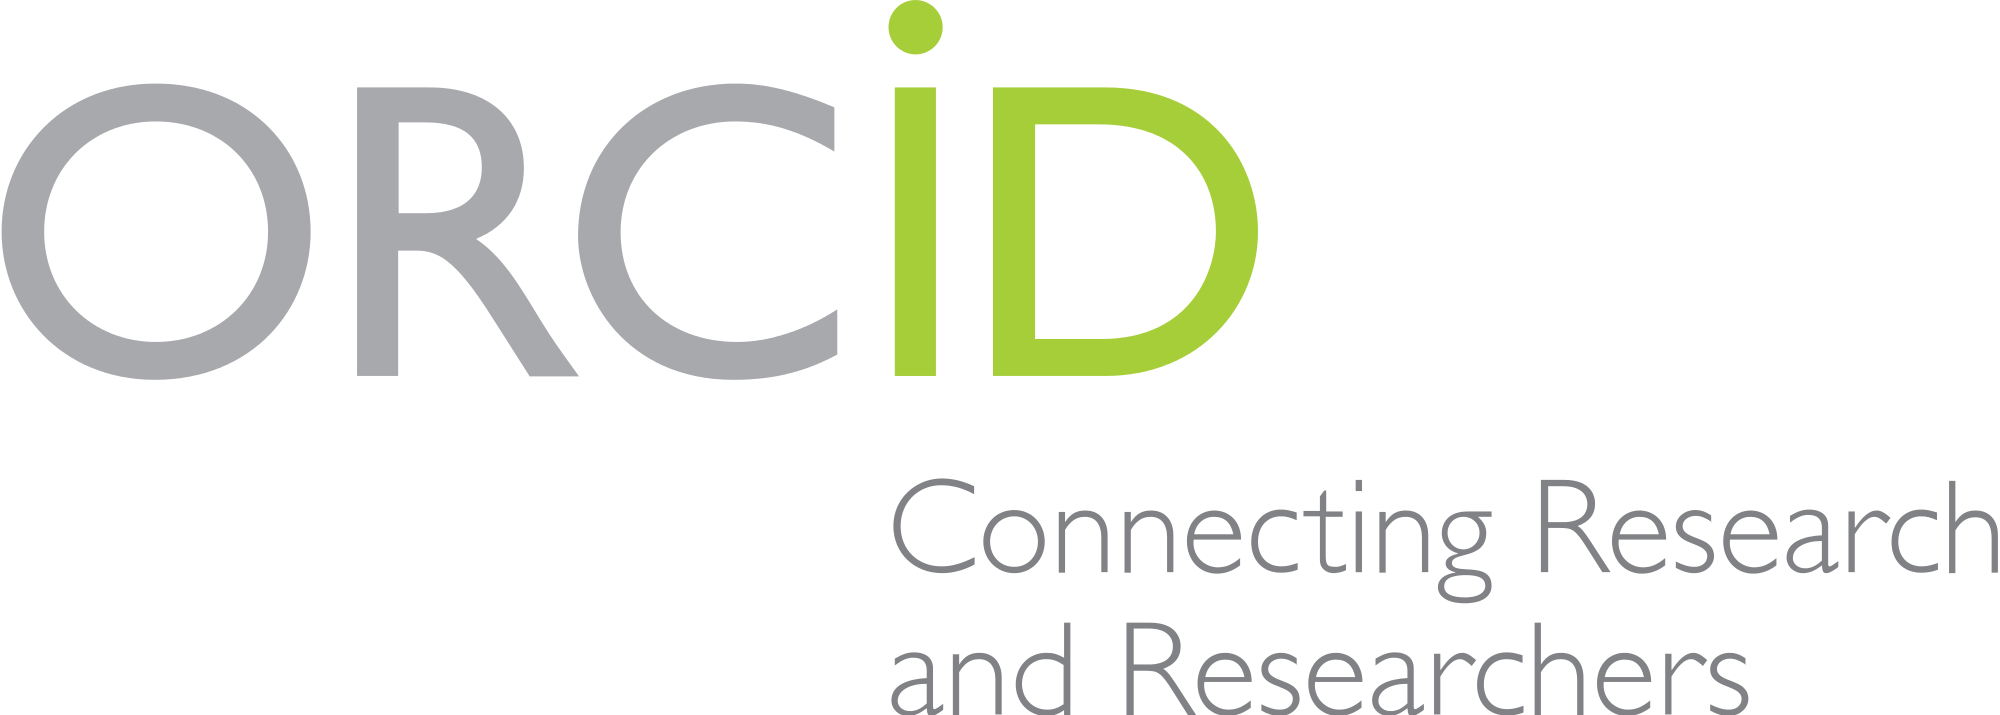 ORCID_logo_with_tagline.png